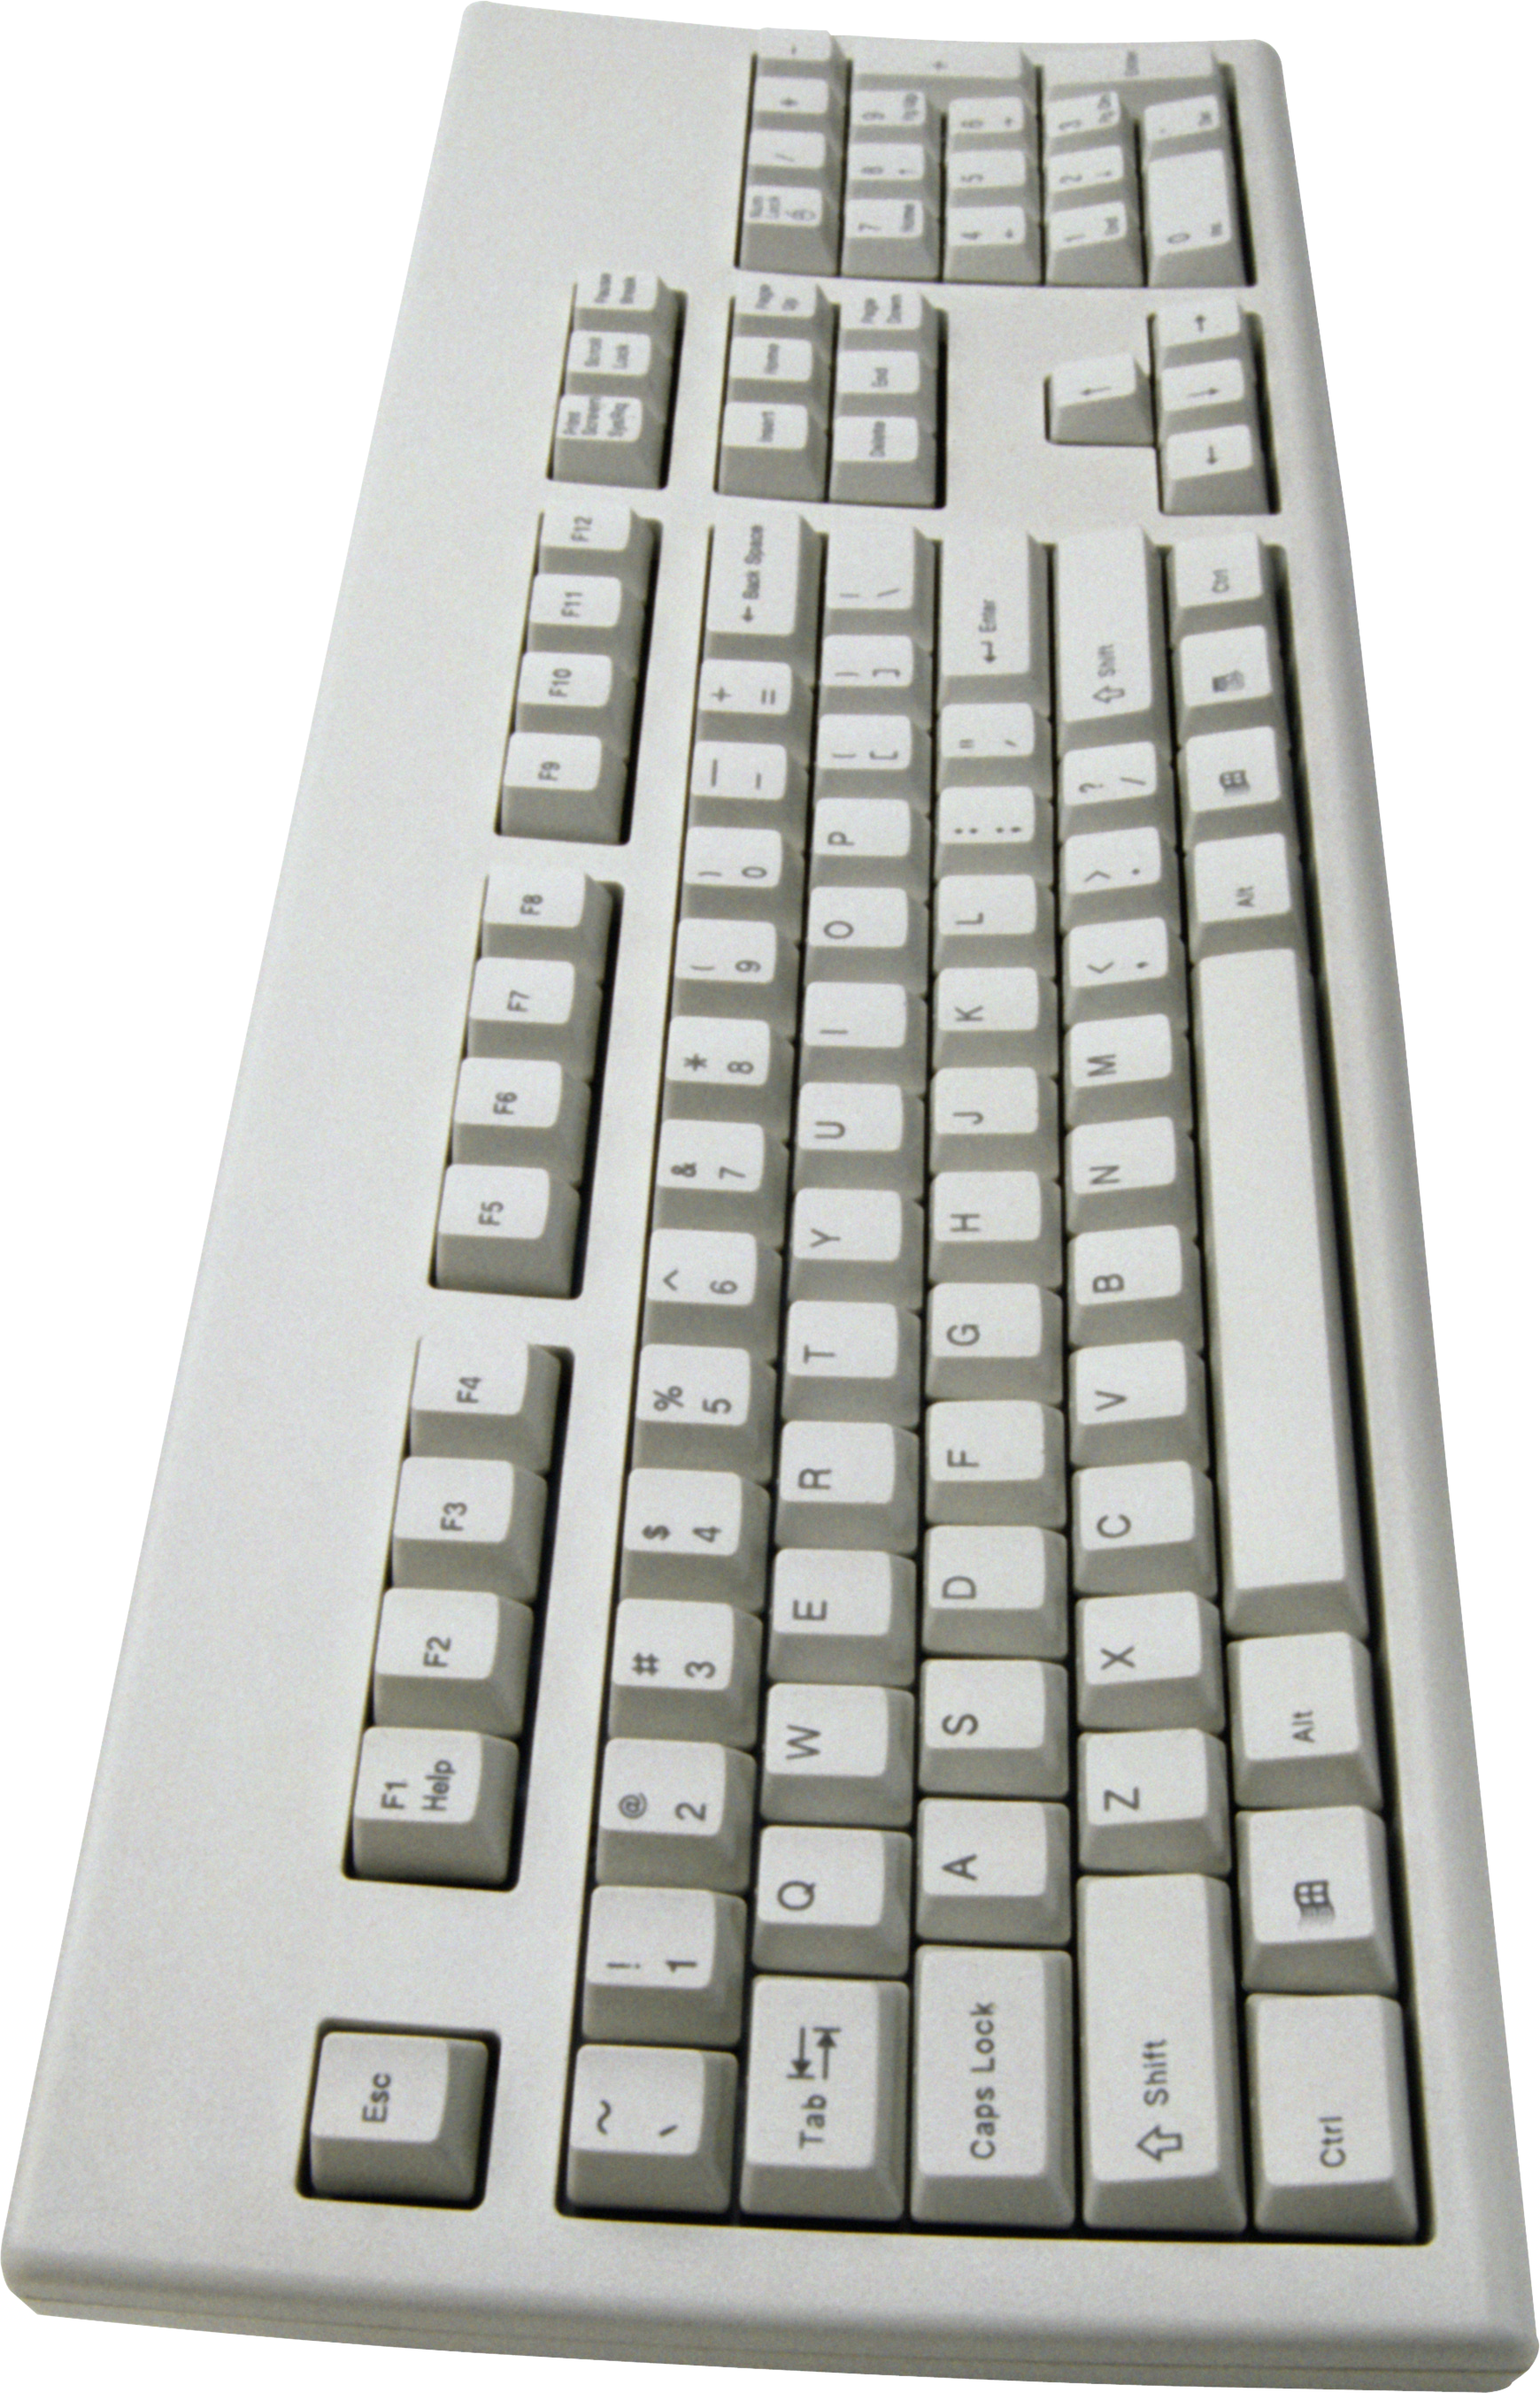 Keyboard of a computer clipart clipart library Keyboard In PNG   Web Icons PNG clipart library